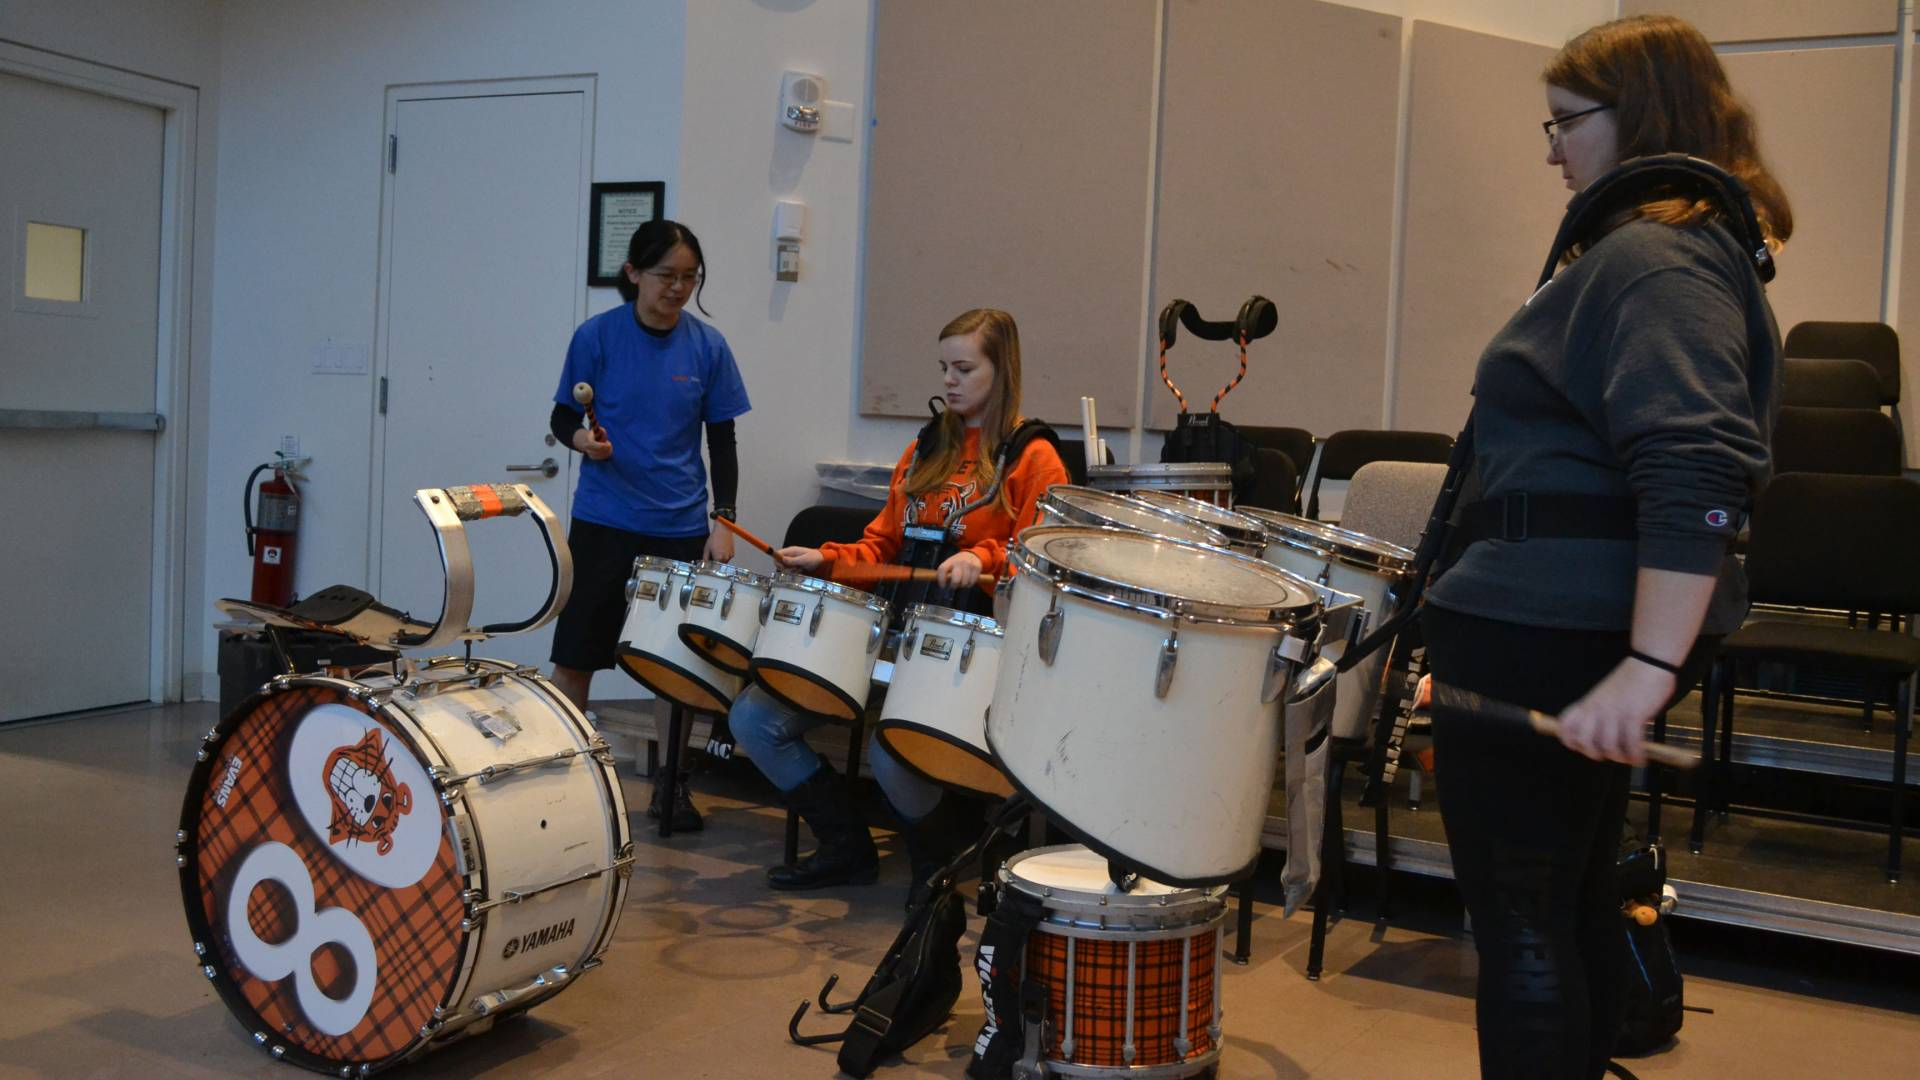 Students at the drums during Learn to Play an Instrument with the Band class